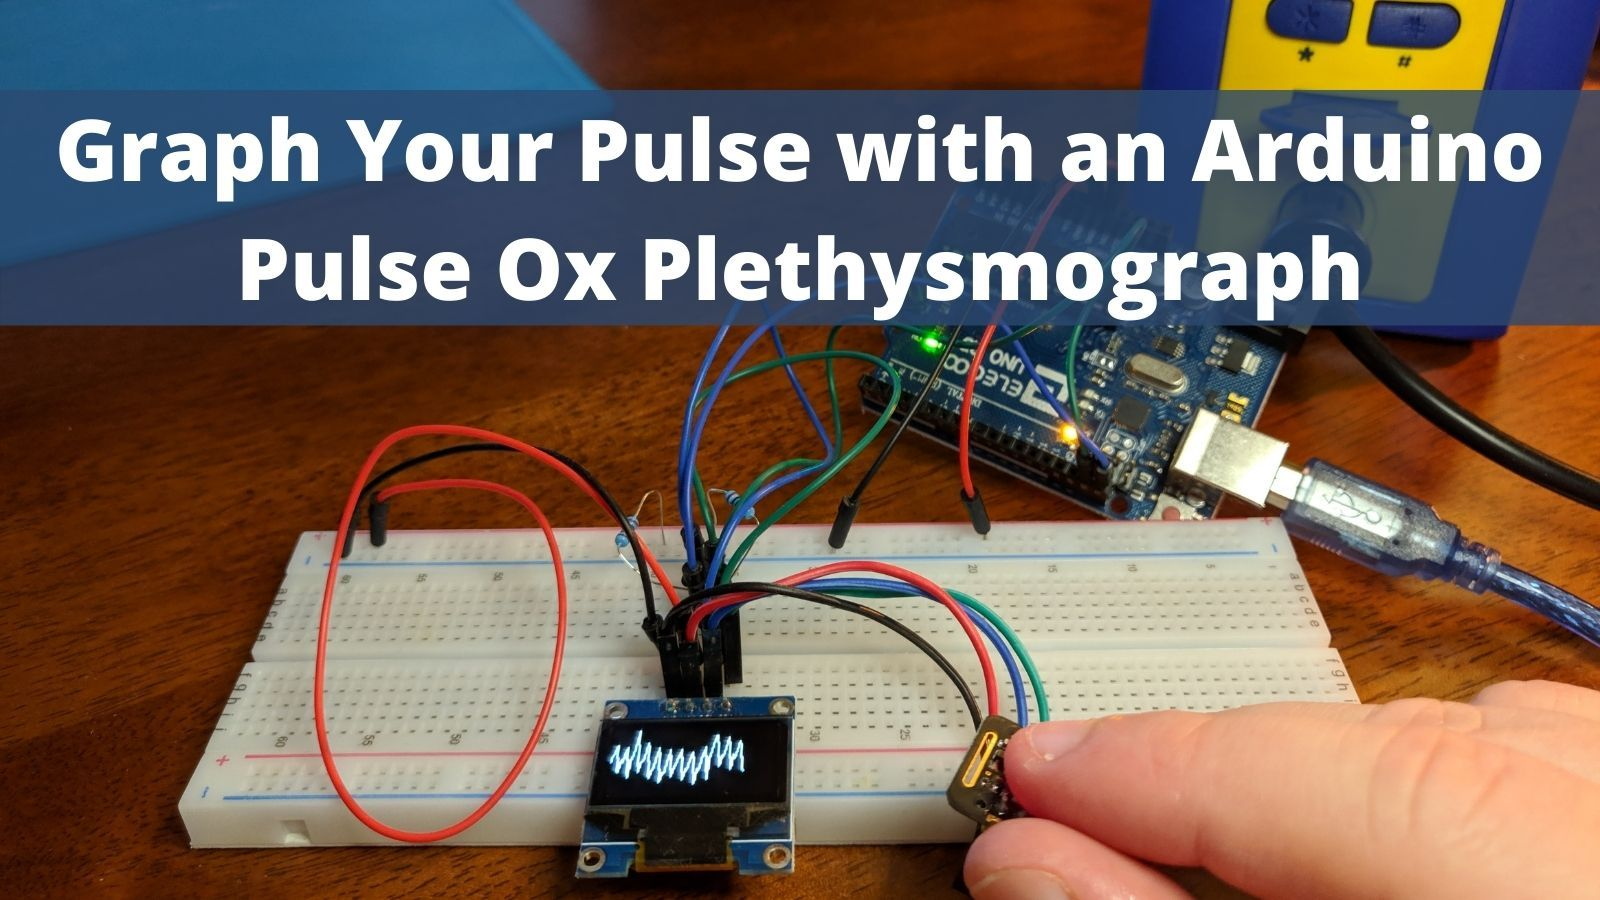 Graph Your Pulse with an Arduino Pulse Ox Plethysmograph